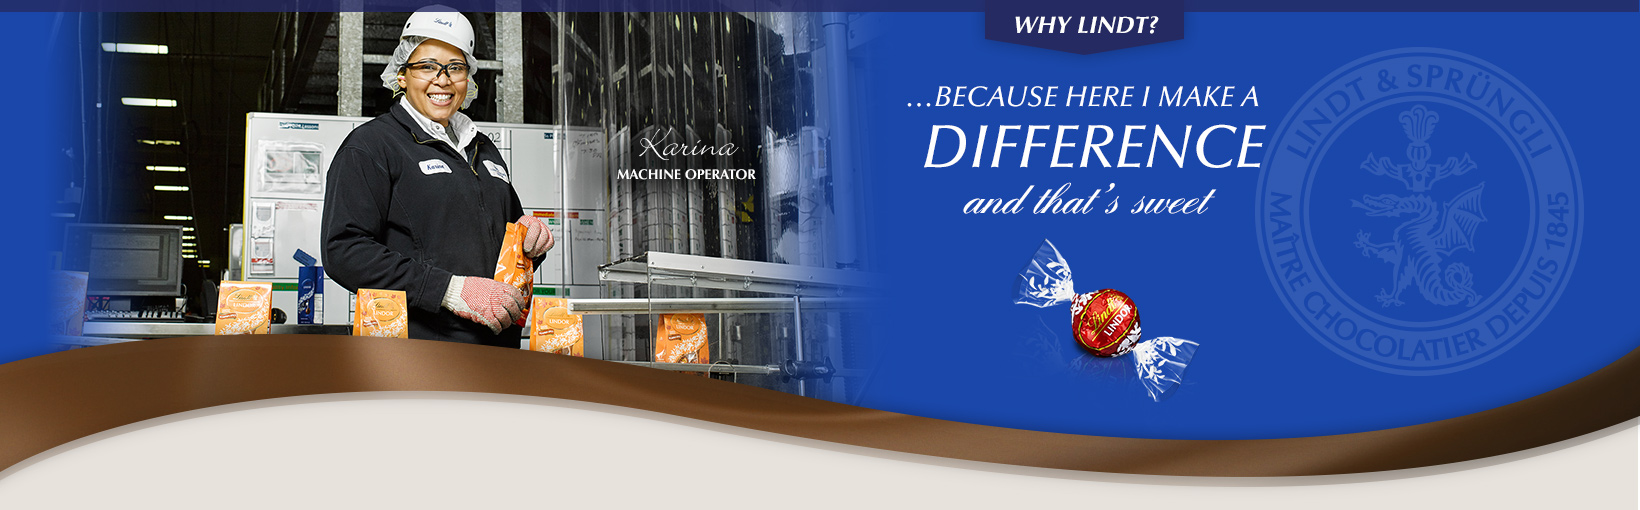 Why Lindt? …Because here I make a difference and that's sweet. Karina